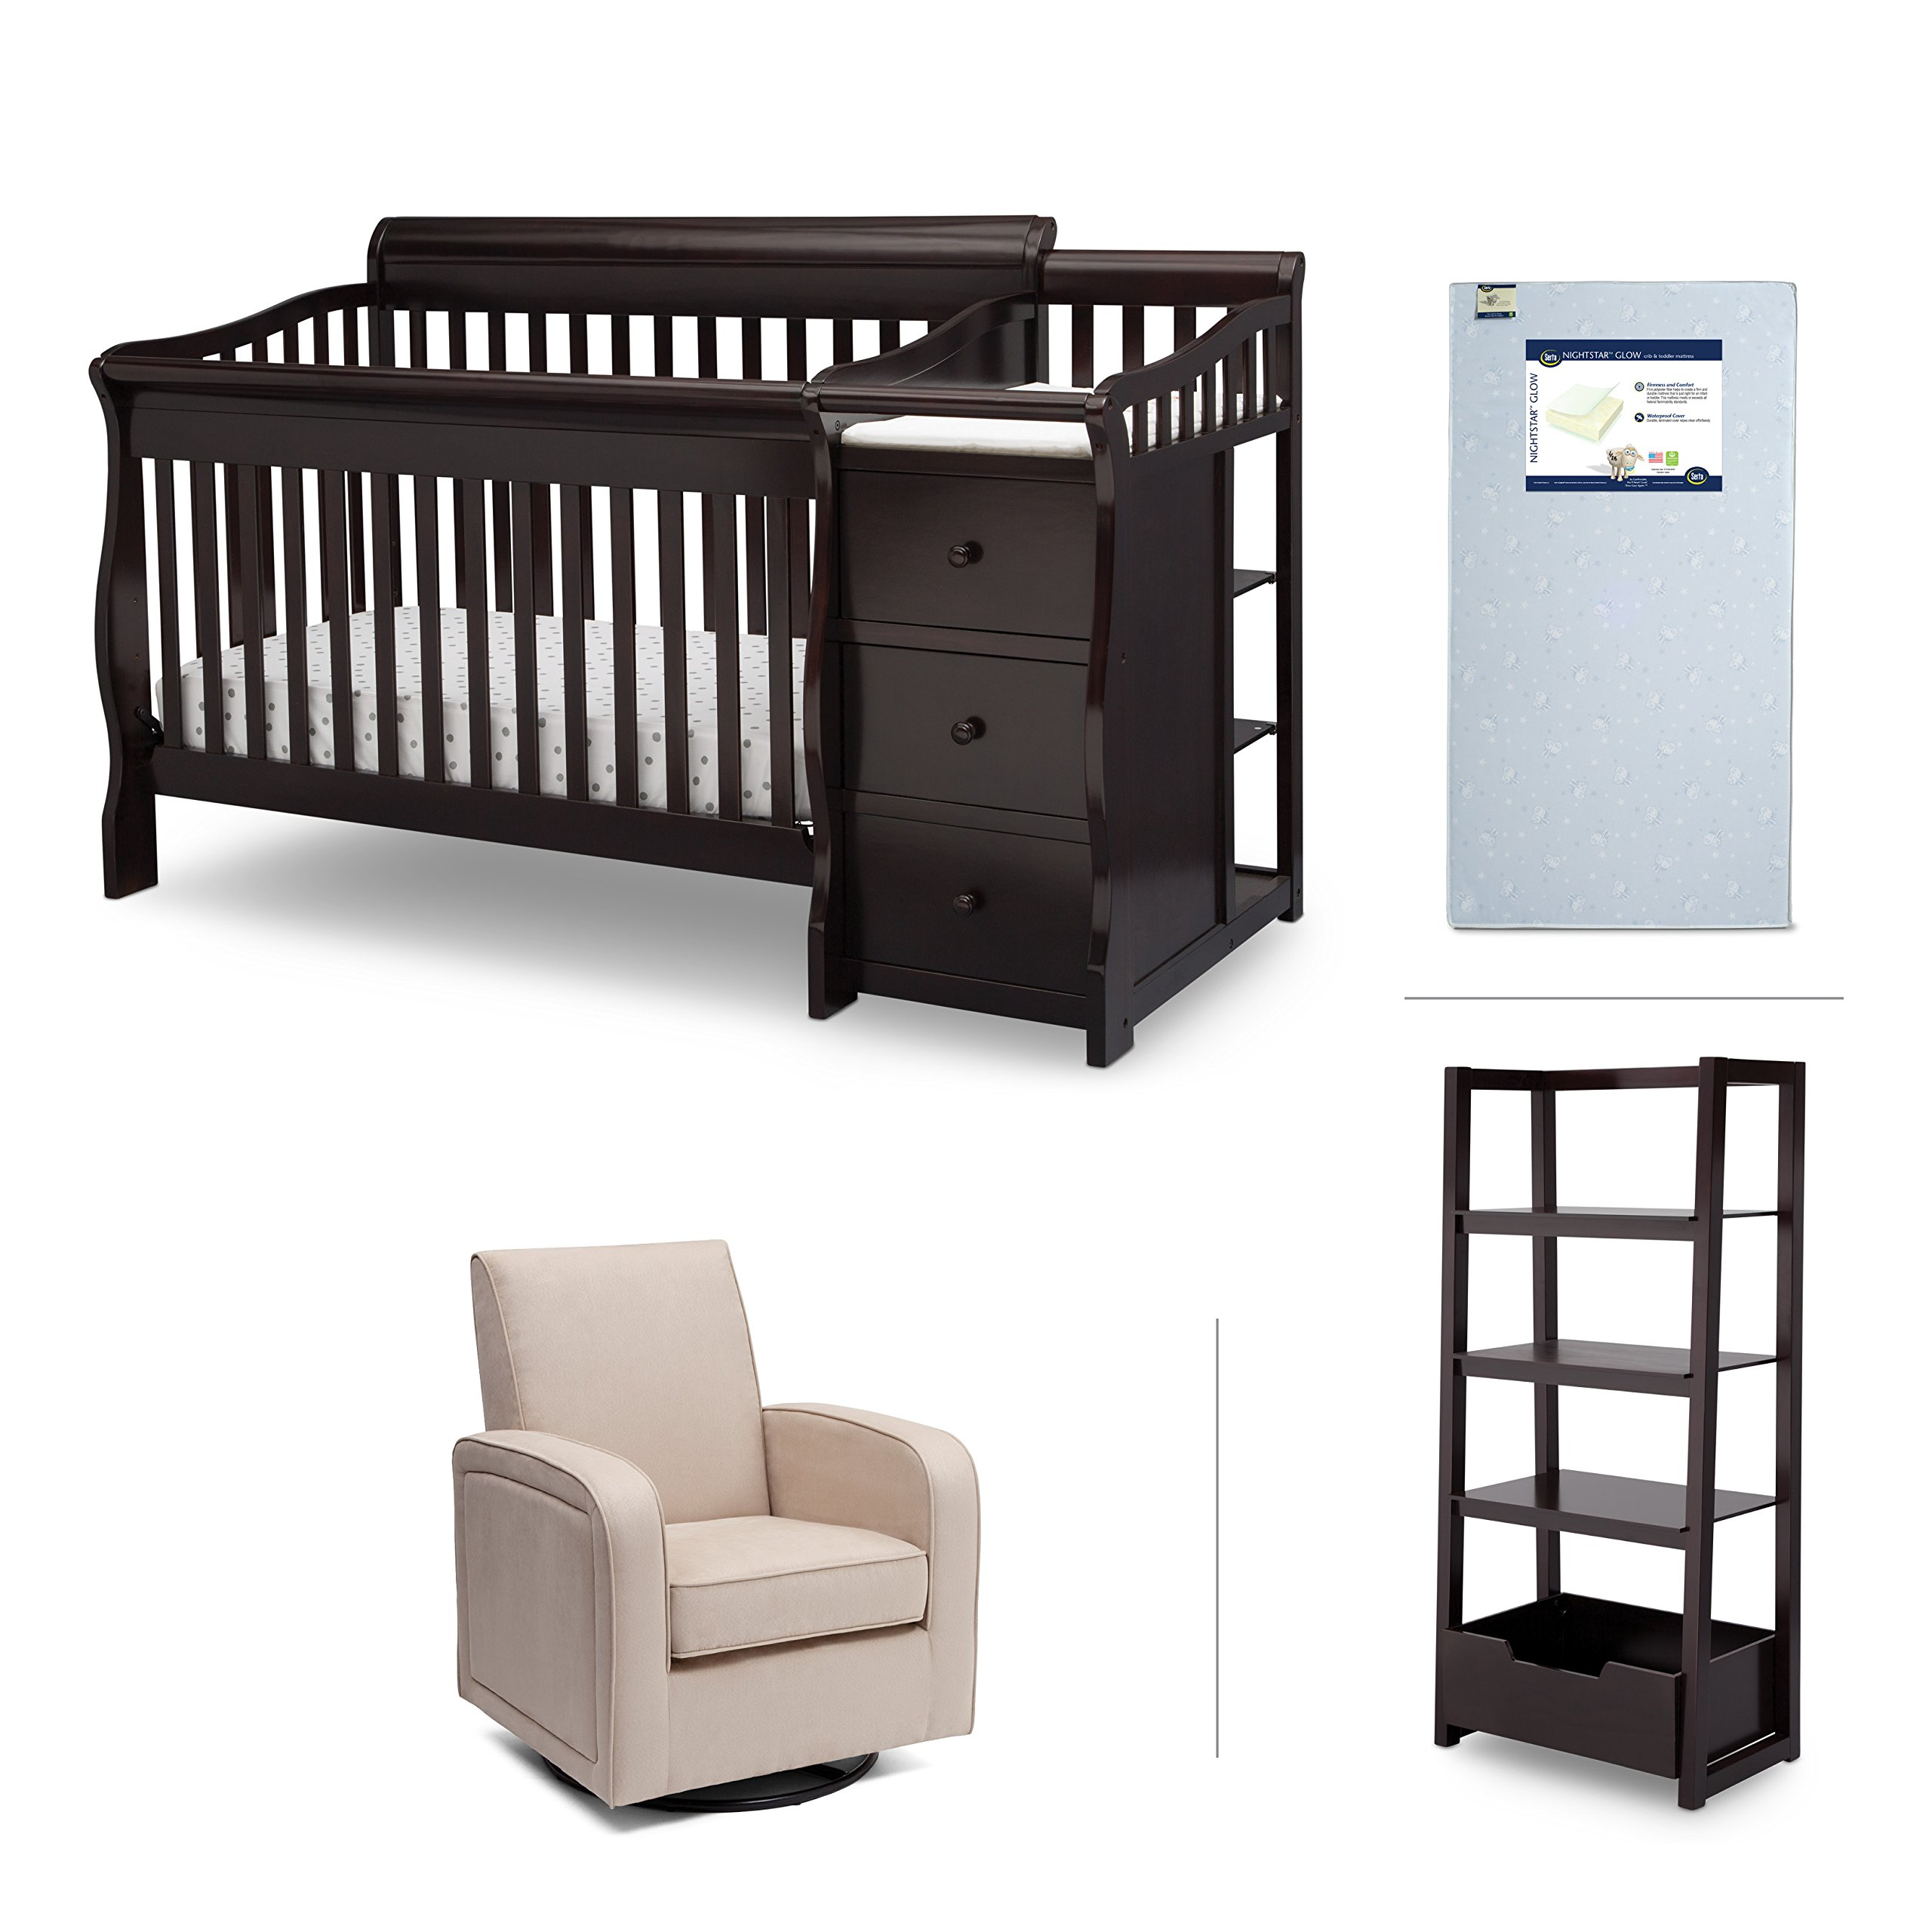 Nursery Furniture Set including Crib Mattress, Convertible Crib-N-Changer, Glider and Wood Ladder Shelf for Book and pictures – Princeton by Delta Children, Dark Chocolate Brown